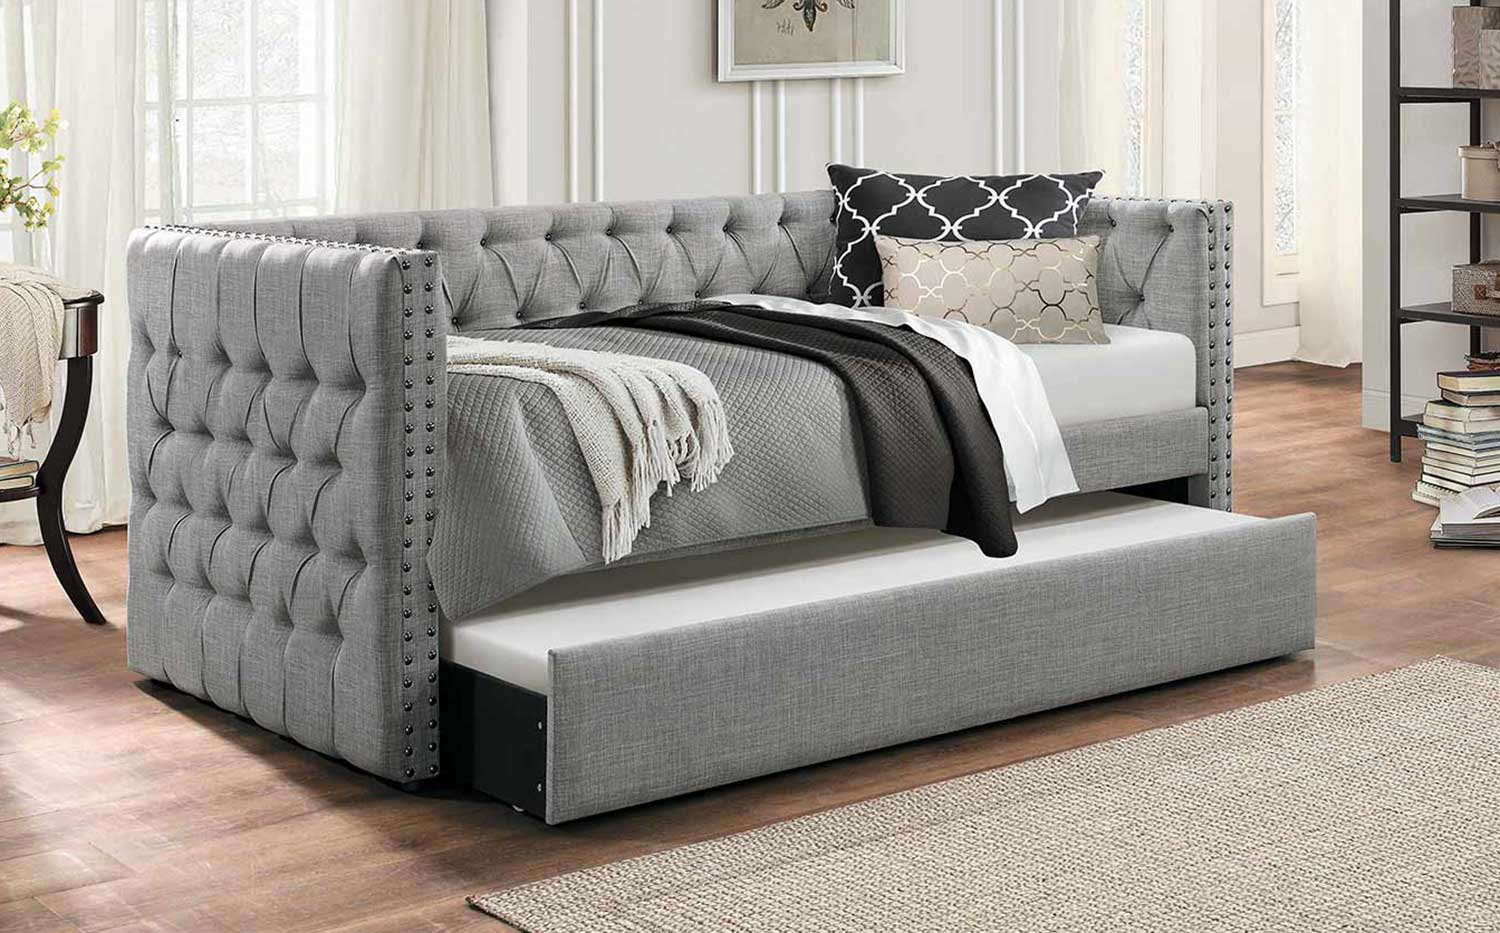 Homelegance Adalie Grey Button Tufted Upholstered Daybed With